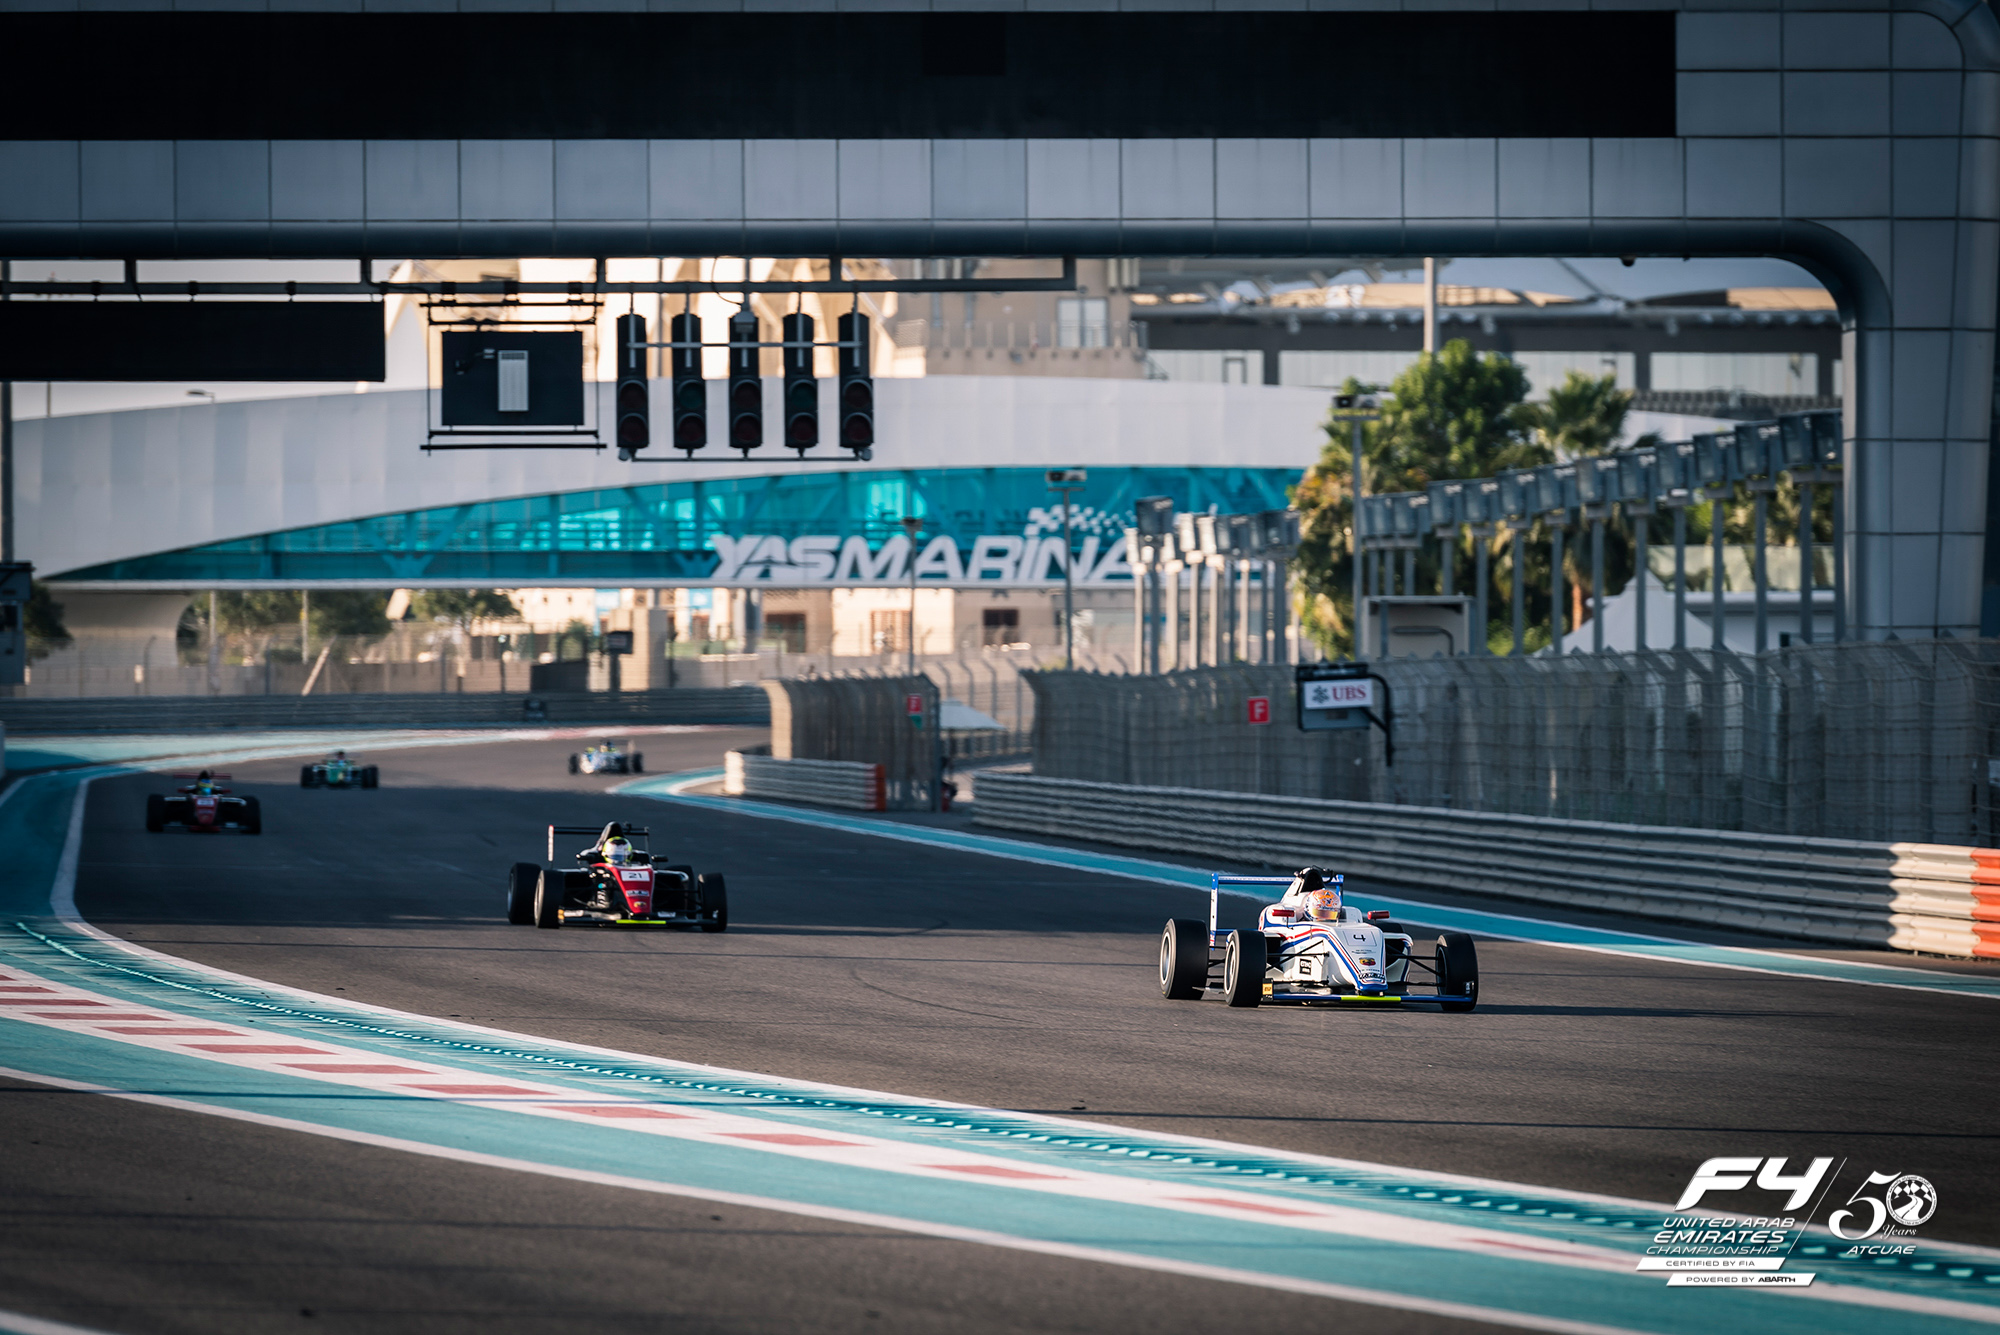 2016 12 18   F4 Second Roud   Abu Dhabi 13 Of 39